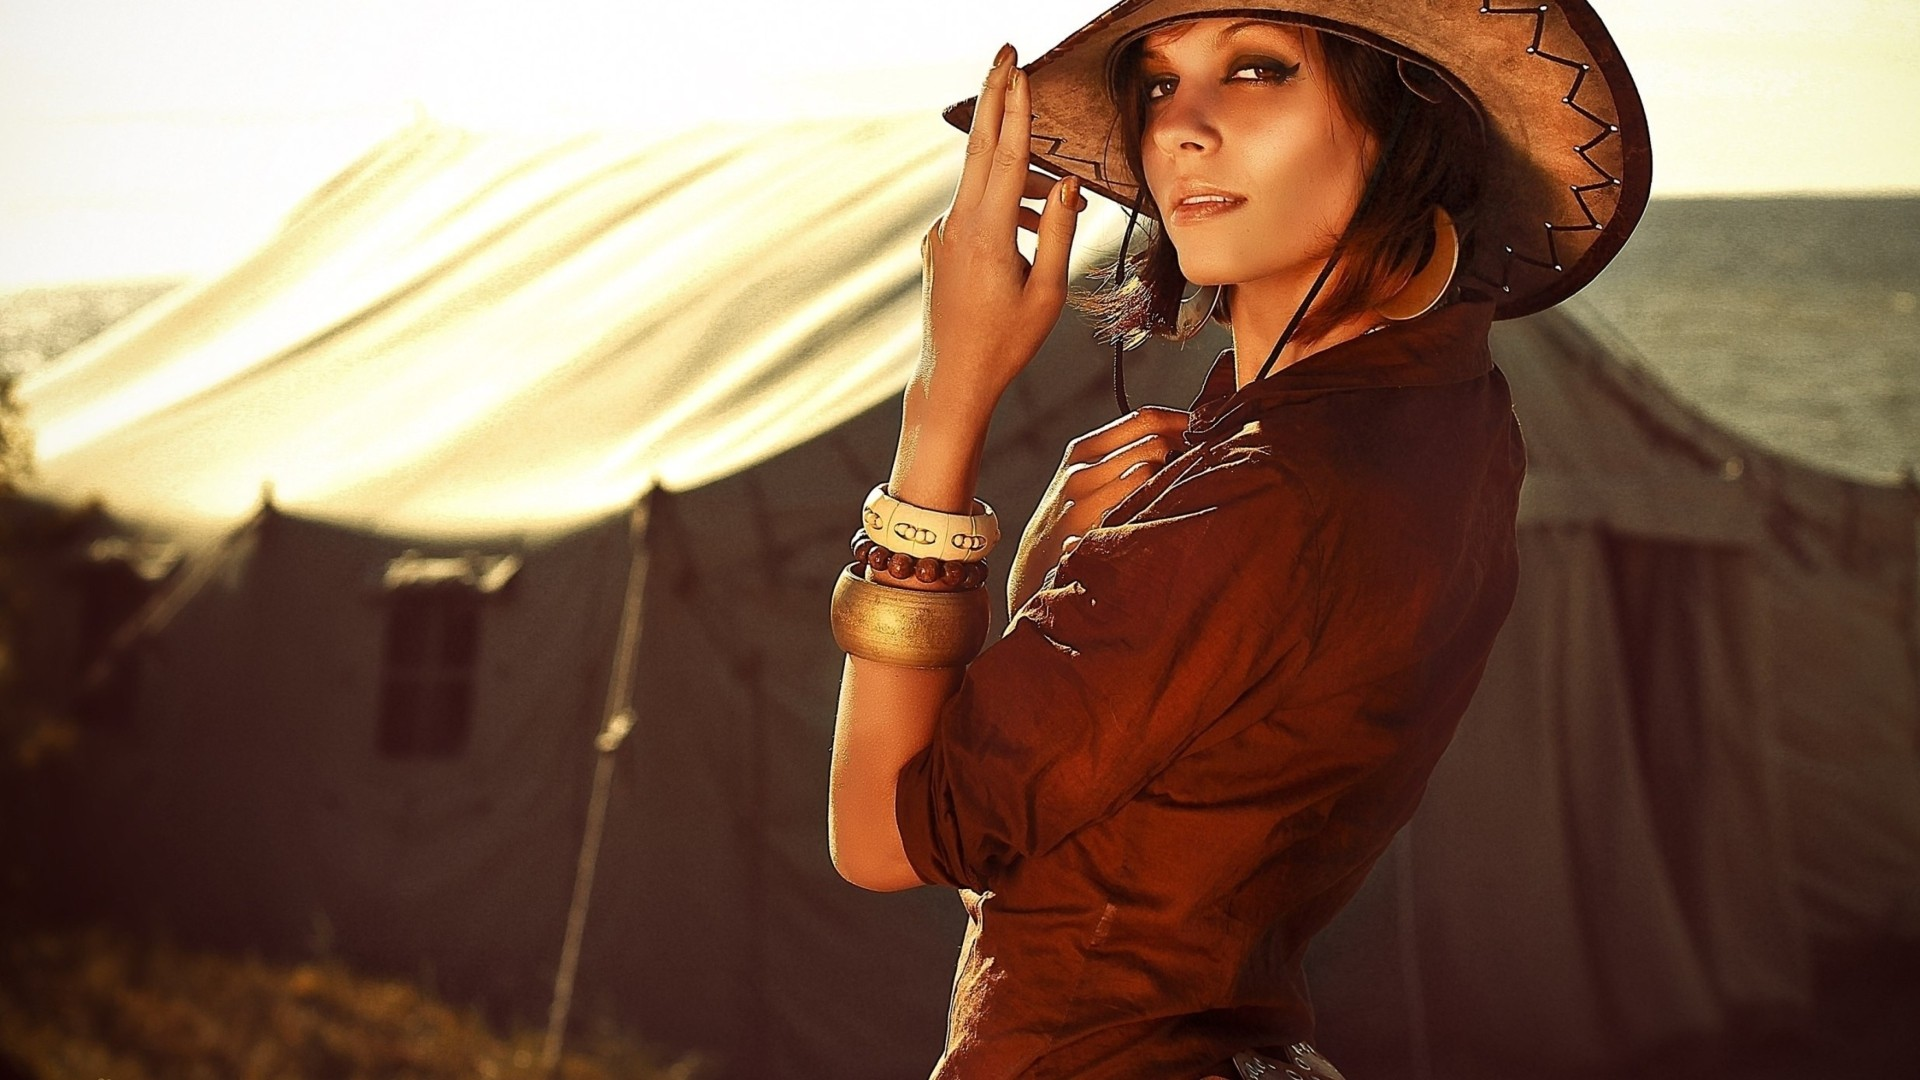 Country Girl Wallpaper Picture hd